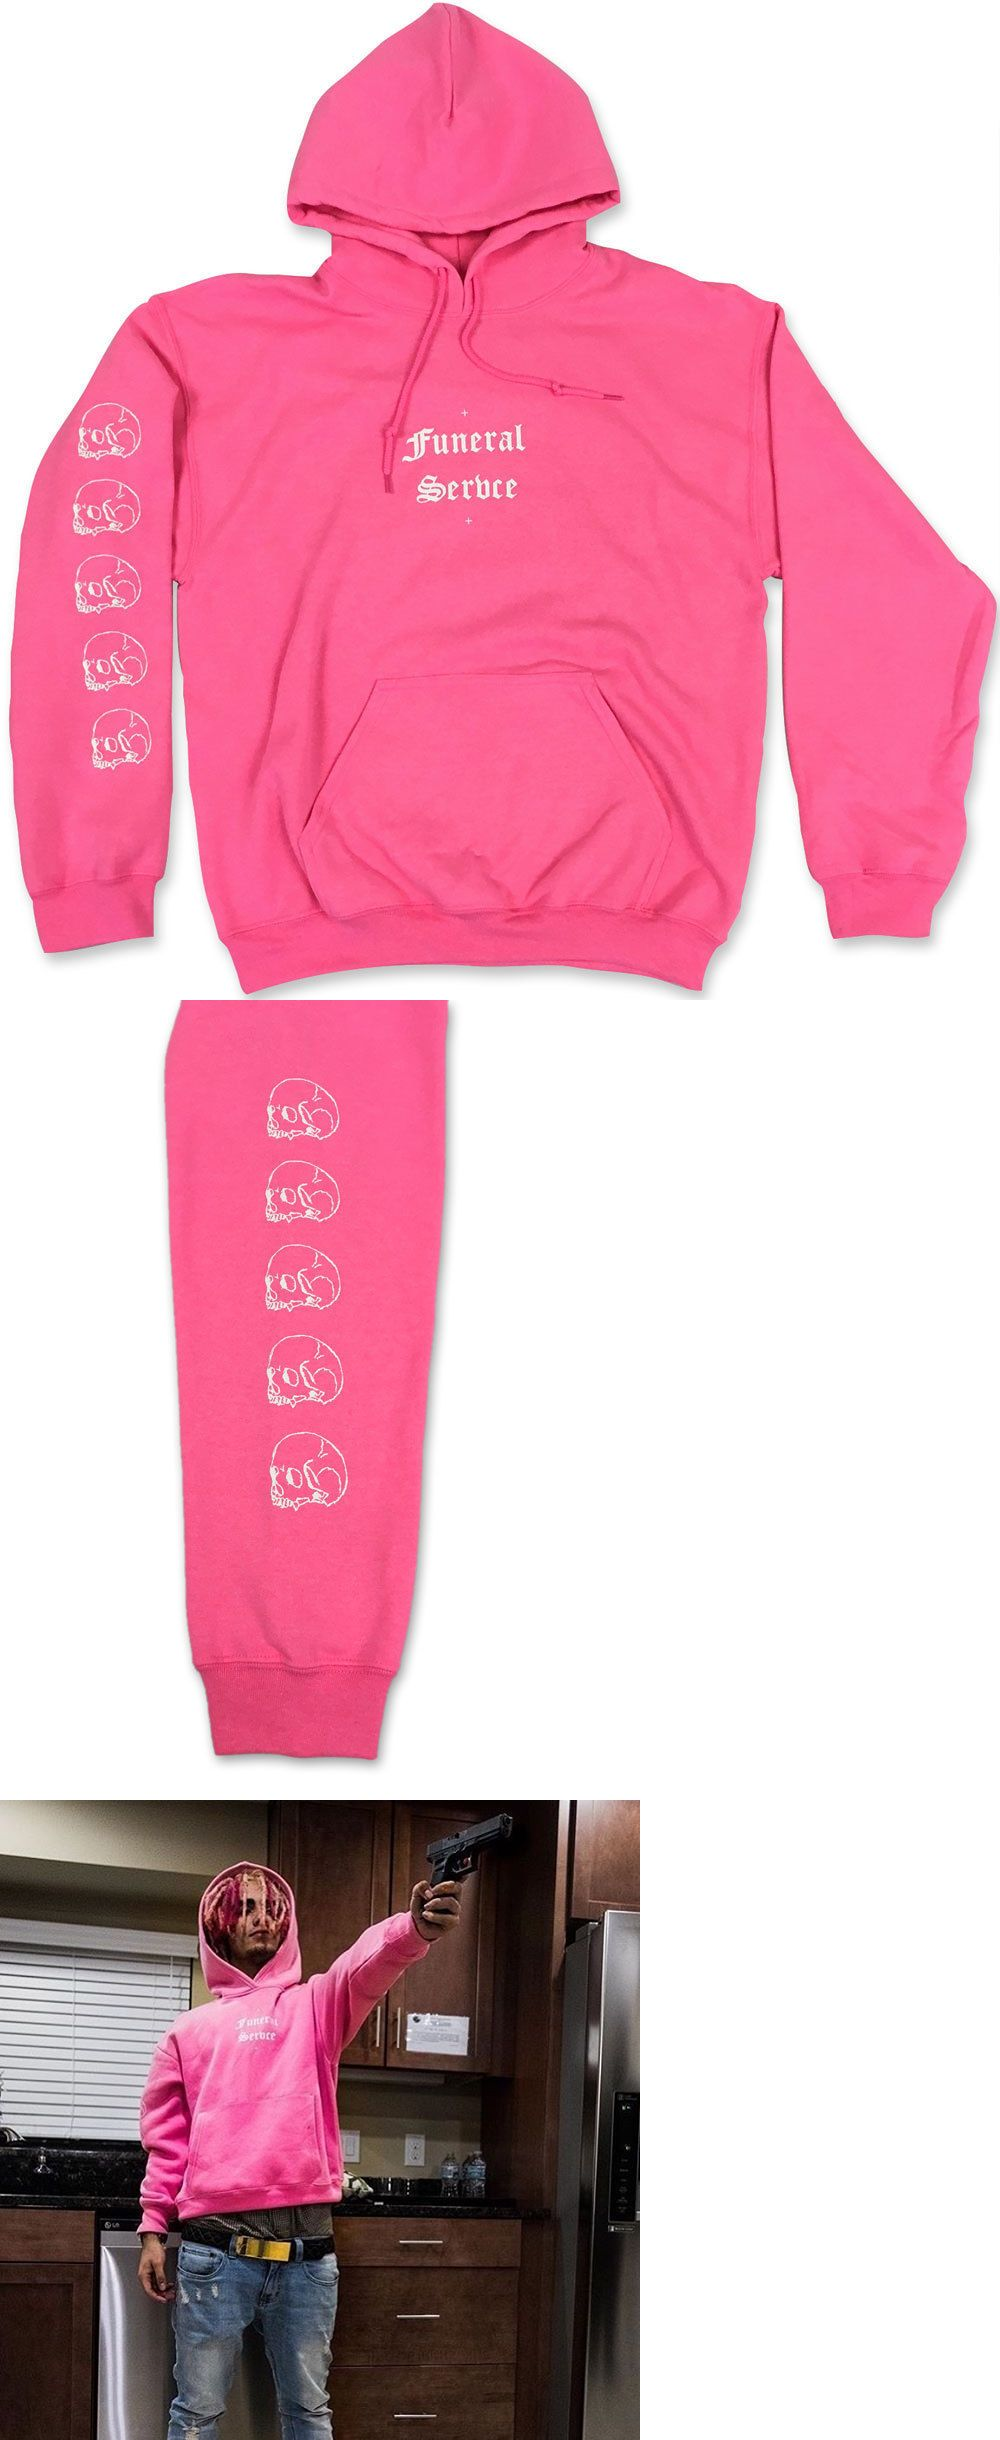 Sweats and Hoodies 155183: Funeral Servce Unisex Pink Hoodie - Whitechapel  Lil Pump Lil Purpp